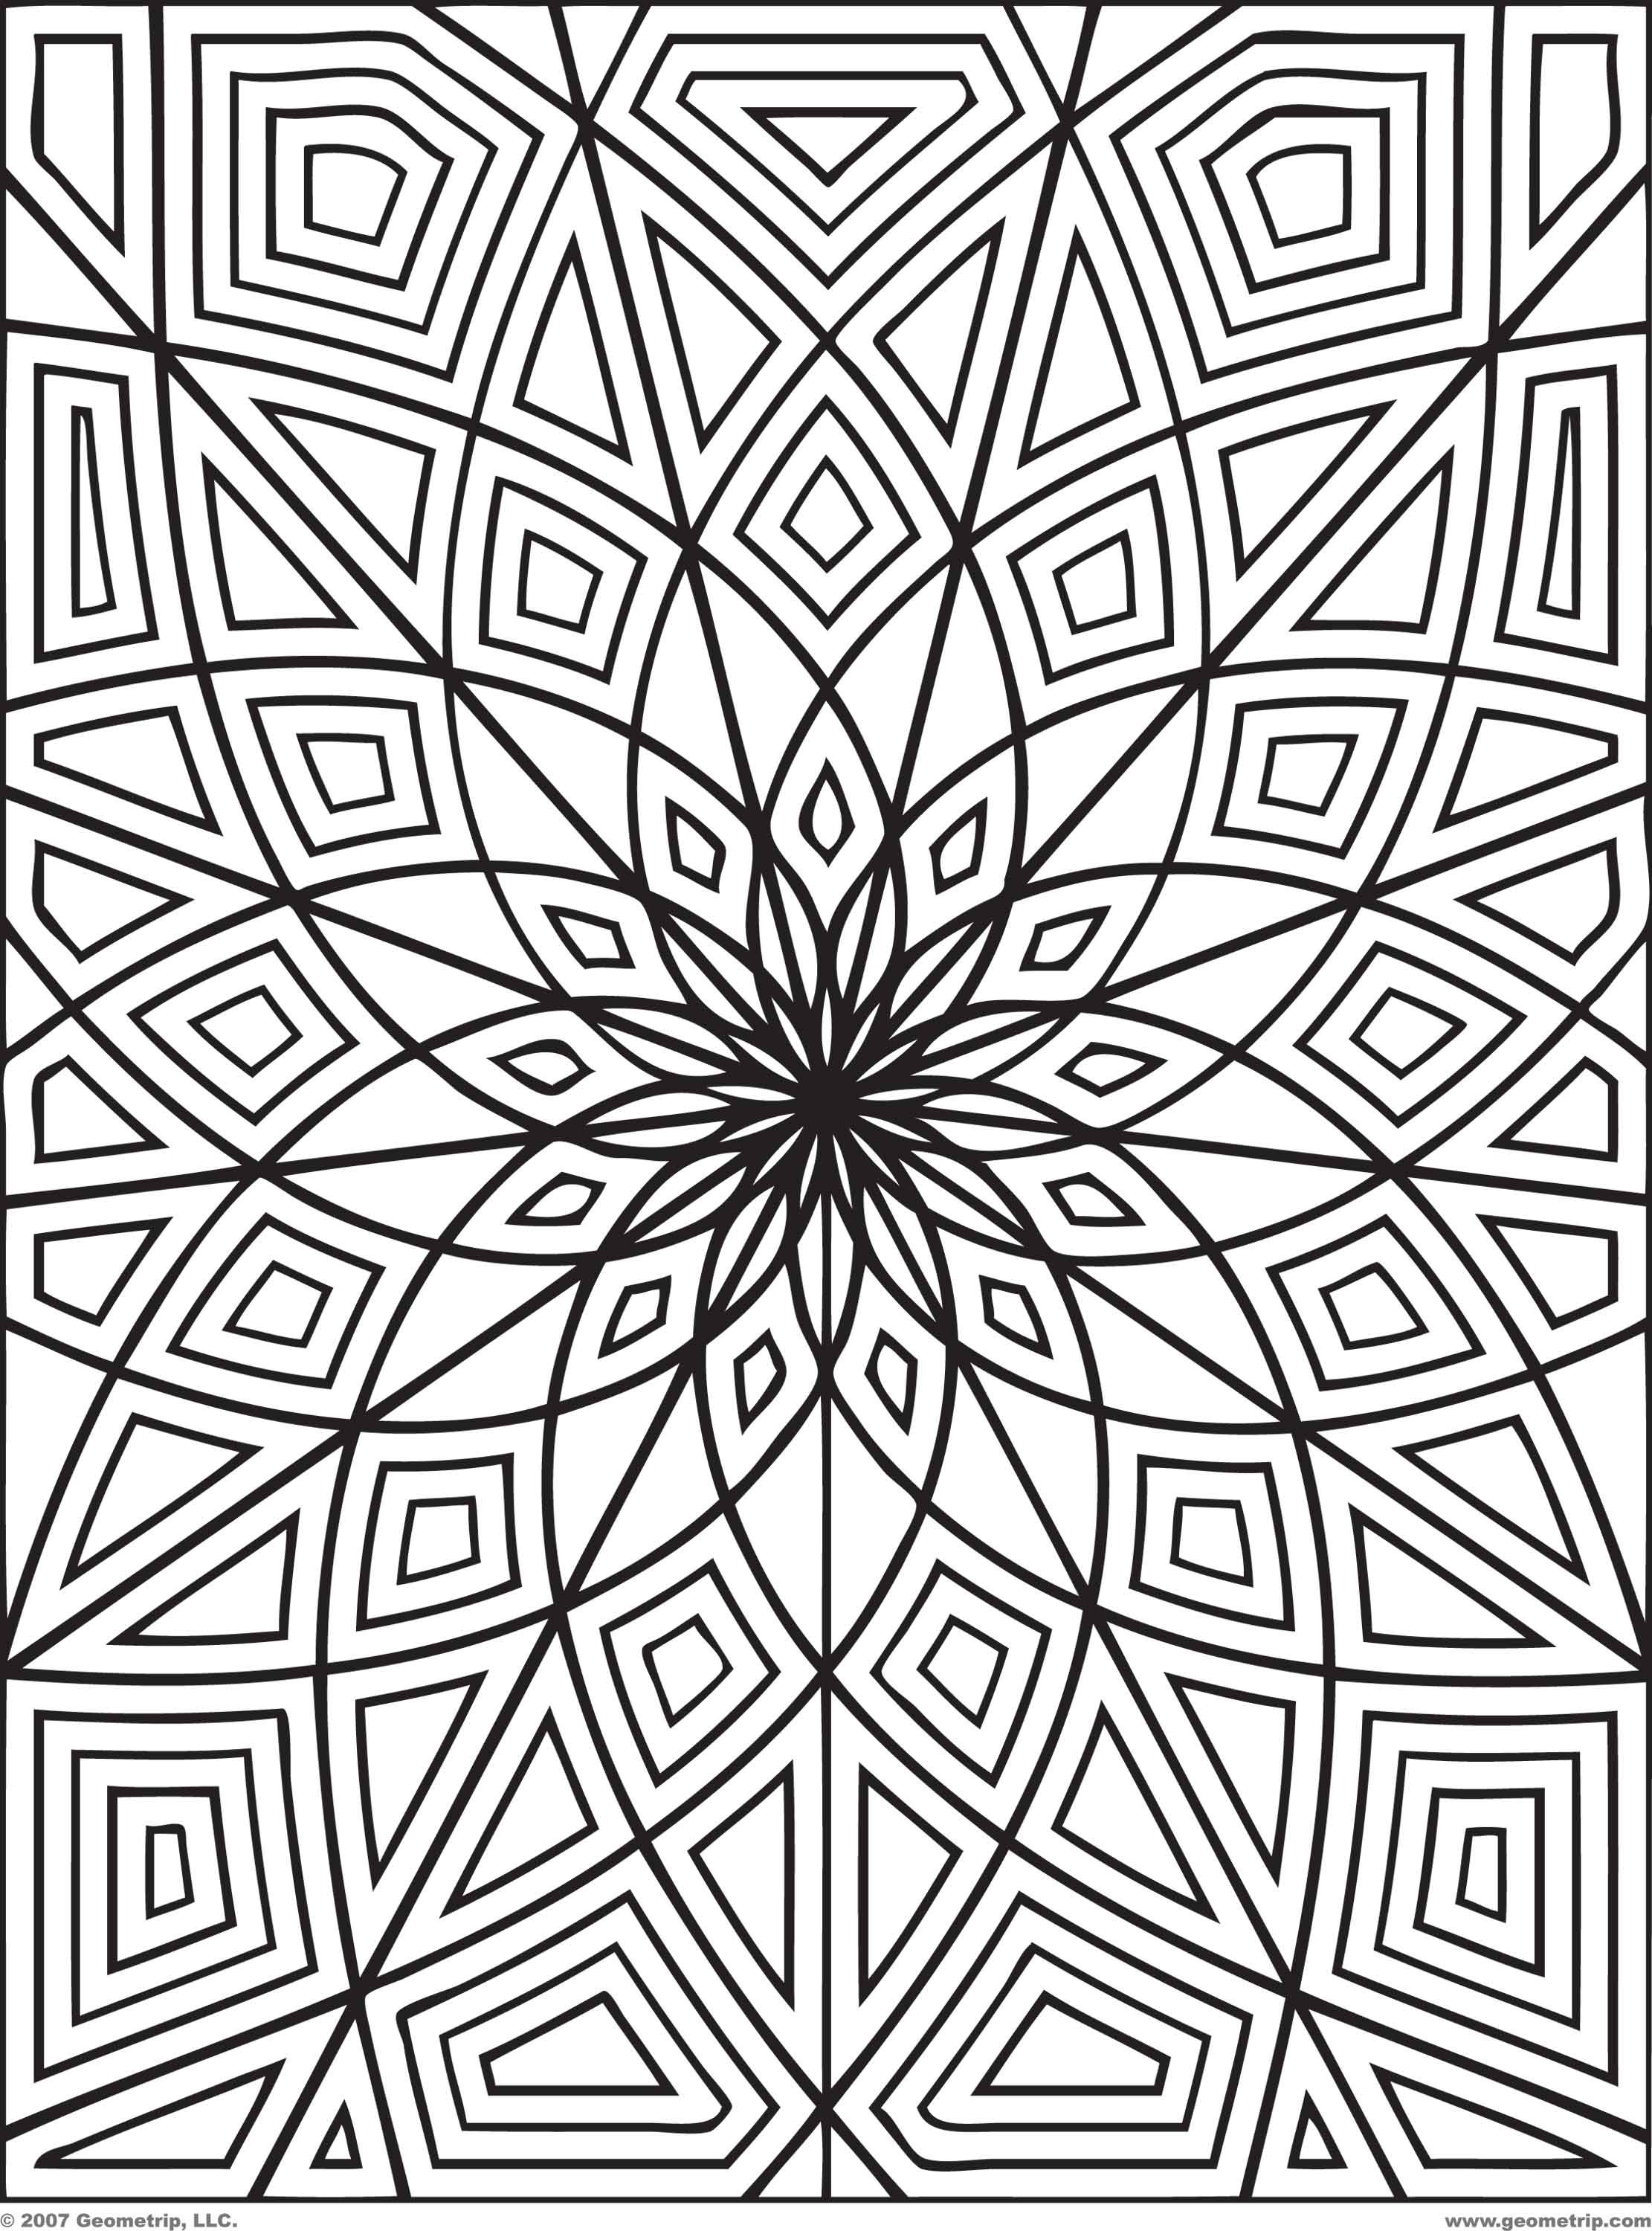 Free Coloring Sheets Adults  Free Printable Adult Coloring Pages Awesome Image 14